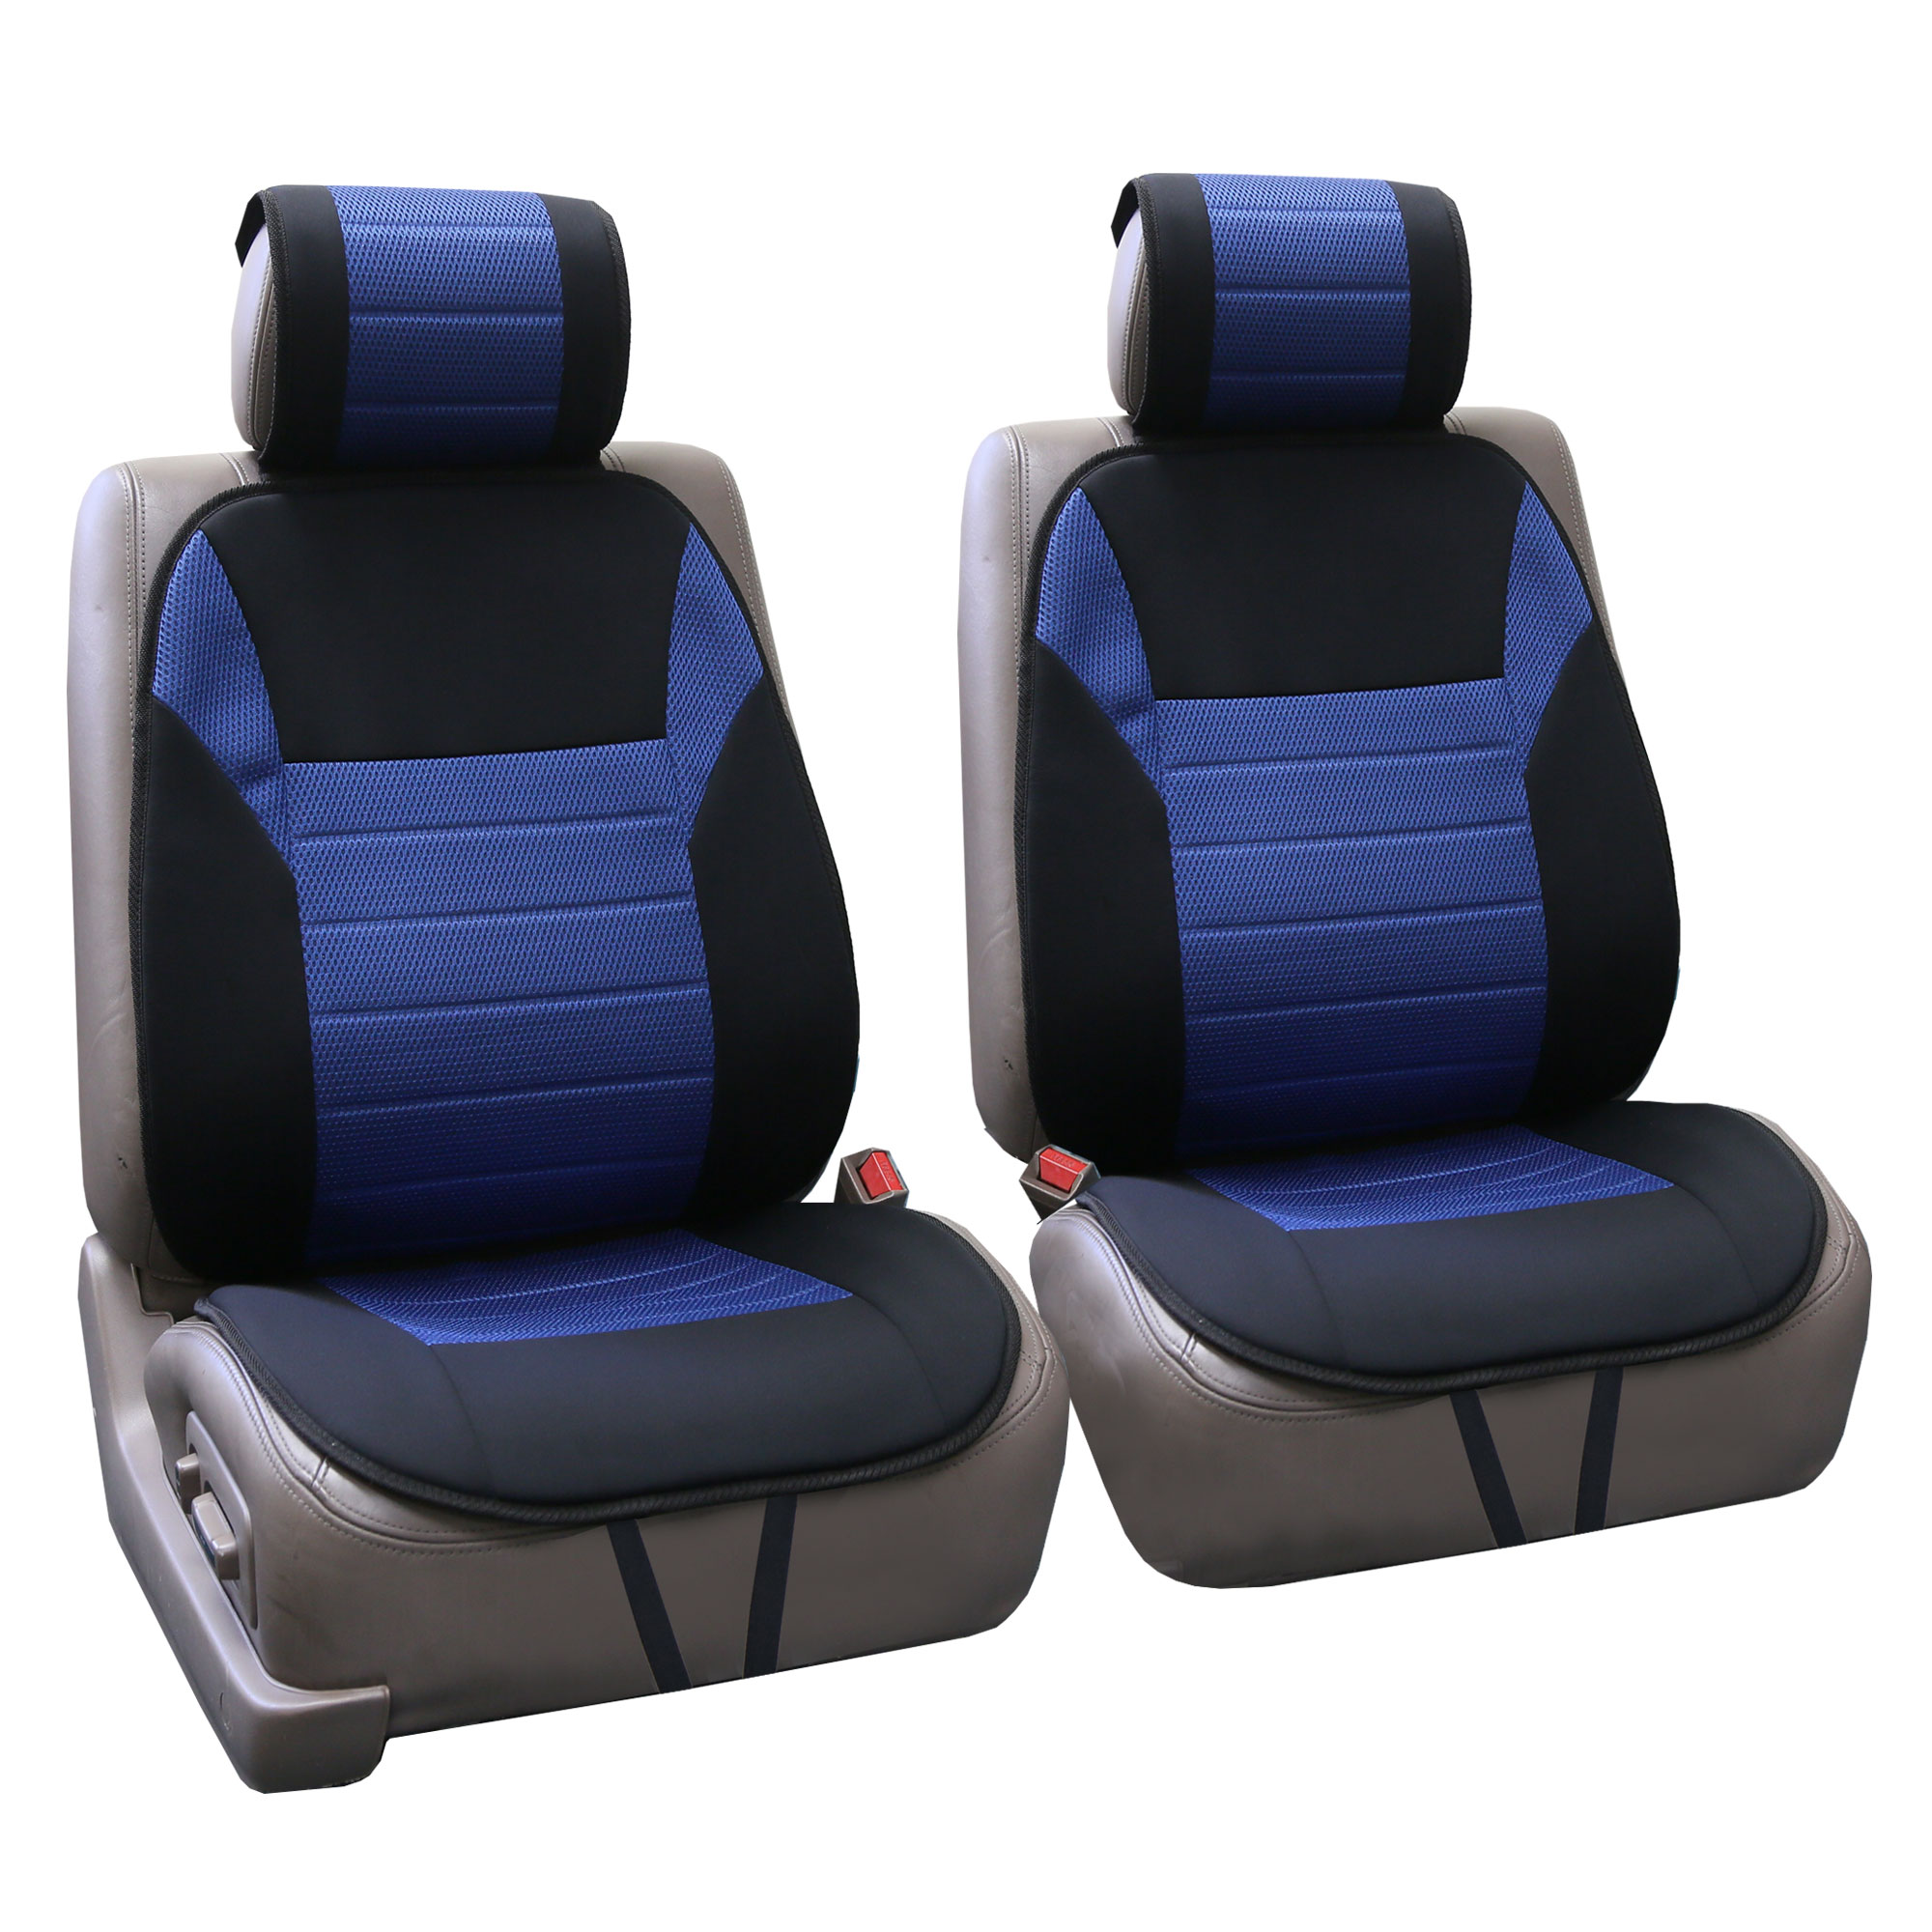 fh group premium fabric pair front car seat cushion pads airbag compatible ebay. Black Bedroom Furniture Sets. Home Design Ideas